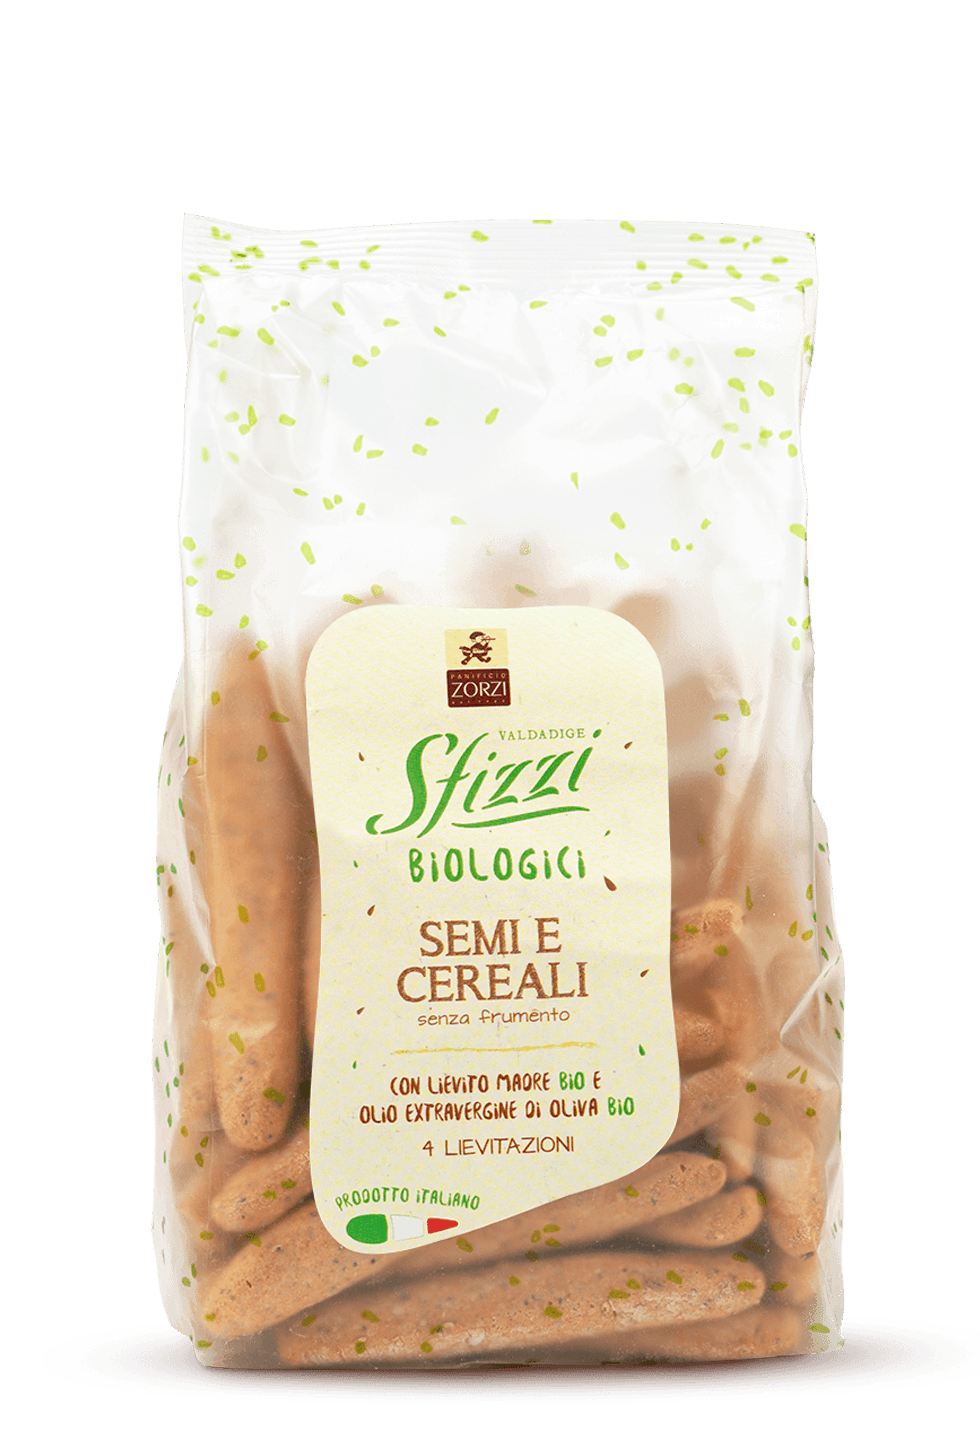 Seeds and Cereals Organic Sfizzi Mini Breadsticks